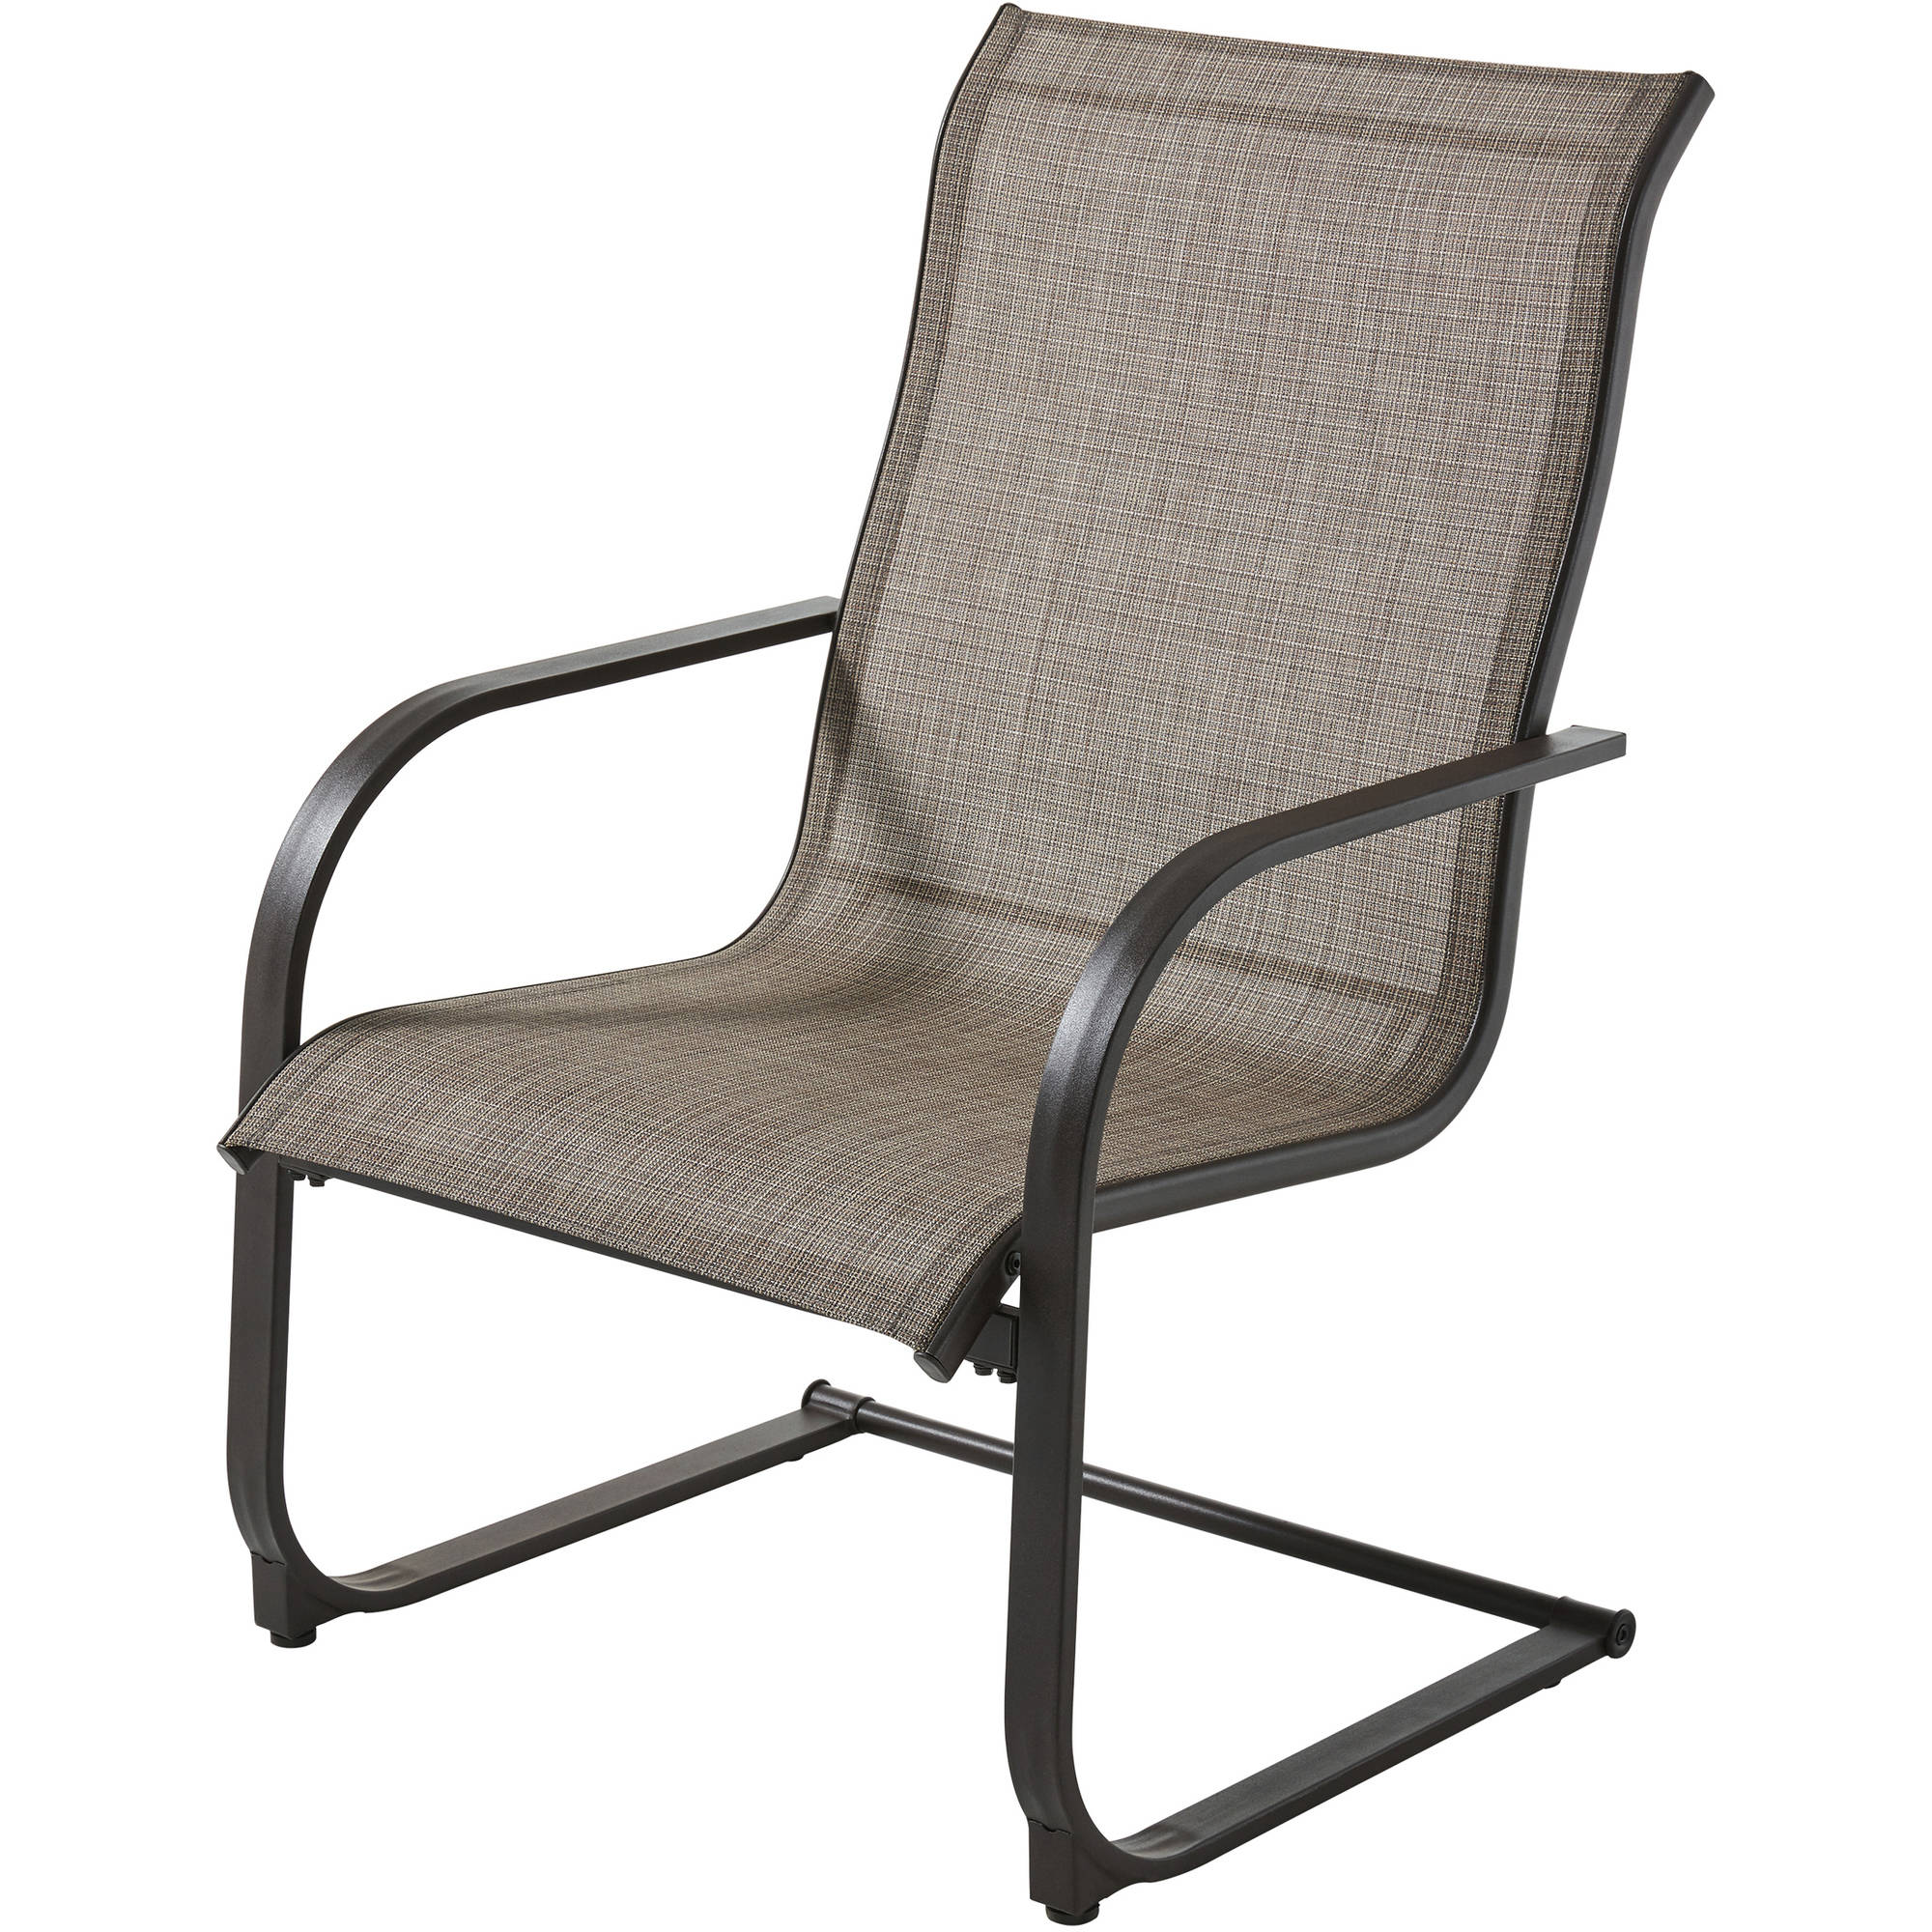 Mainstays Bristol Springs Outdoor Dining Chairs, Gray, Set of 6